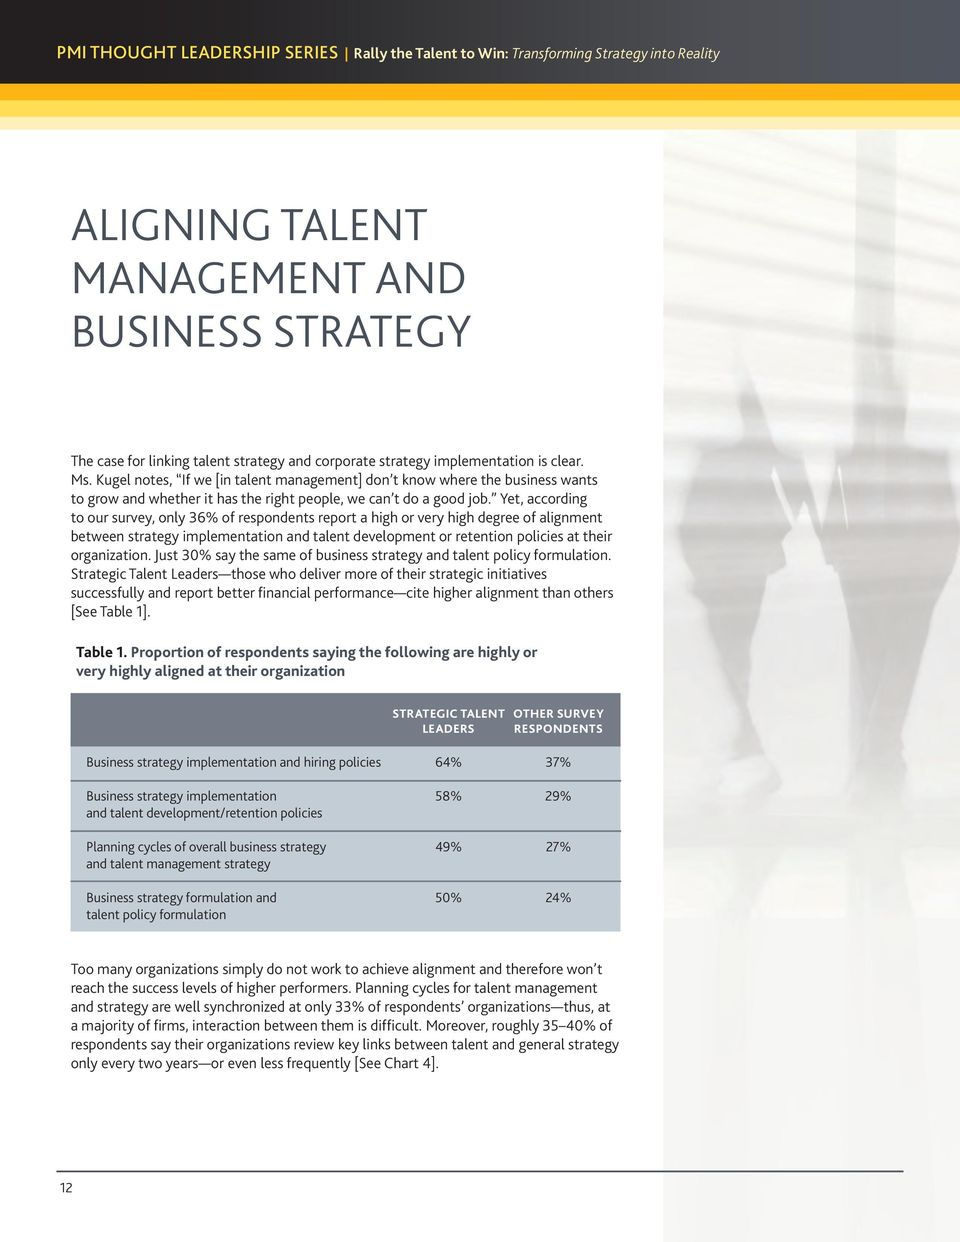 Yet, according to our survey, only 36% of respondents report a high or very high degree of alignment between strategy implementation and talent development or retention policies at their organization.